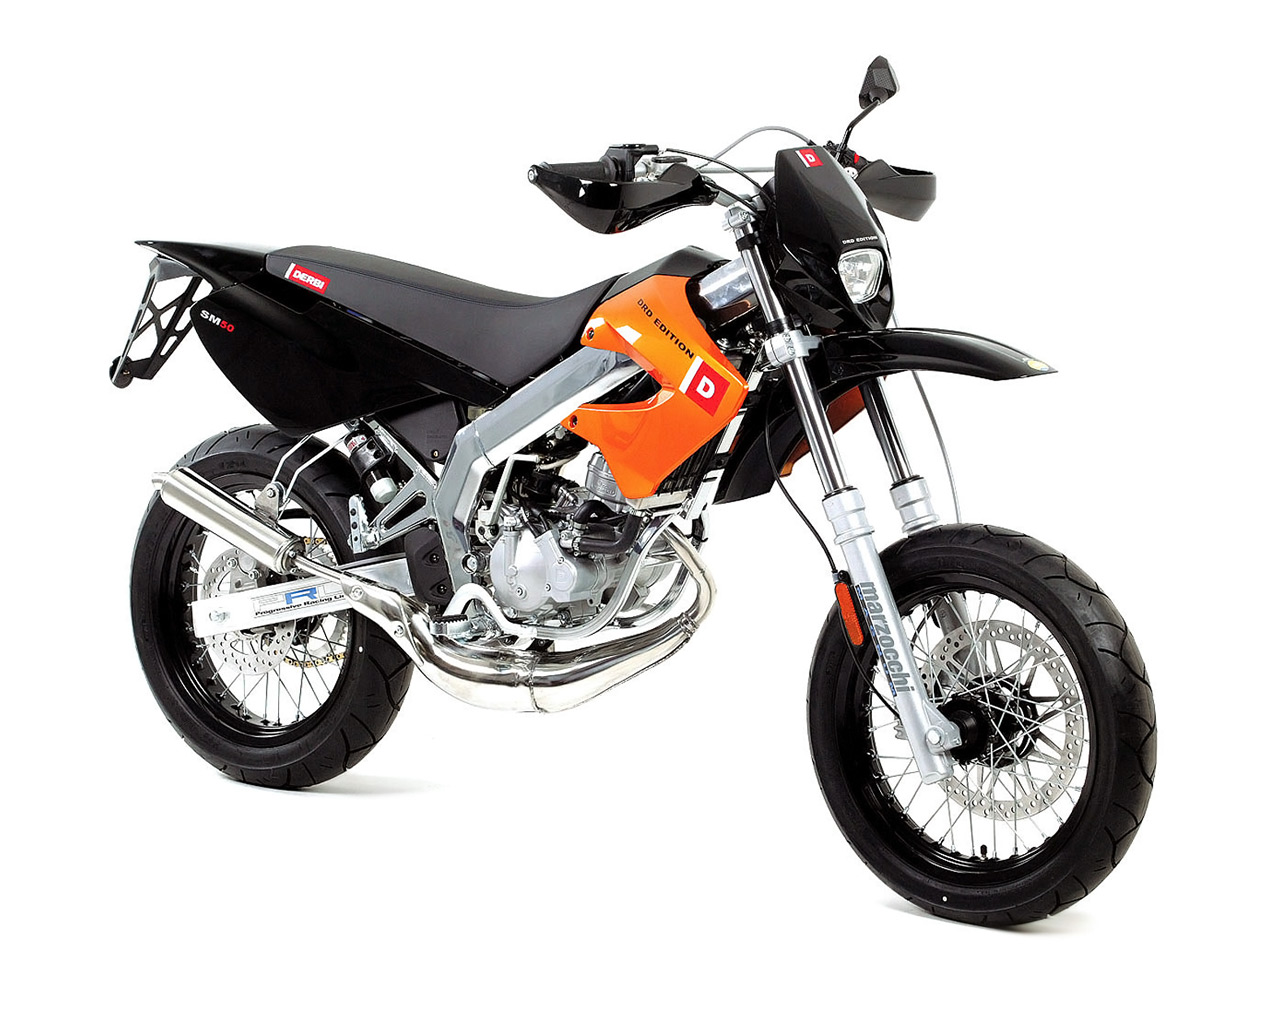 Derbi Senda DRD Evo 50 SM Limited Edition images #71221